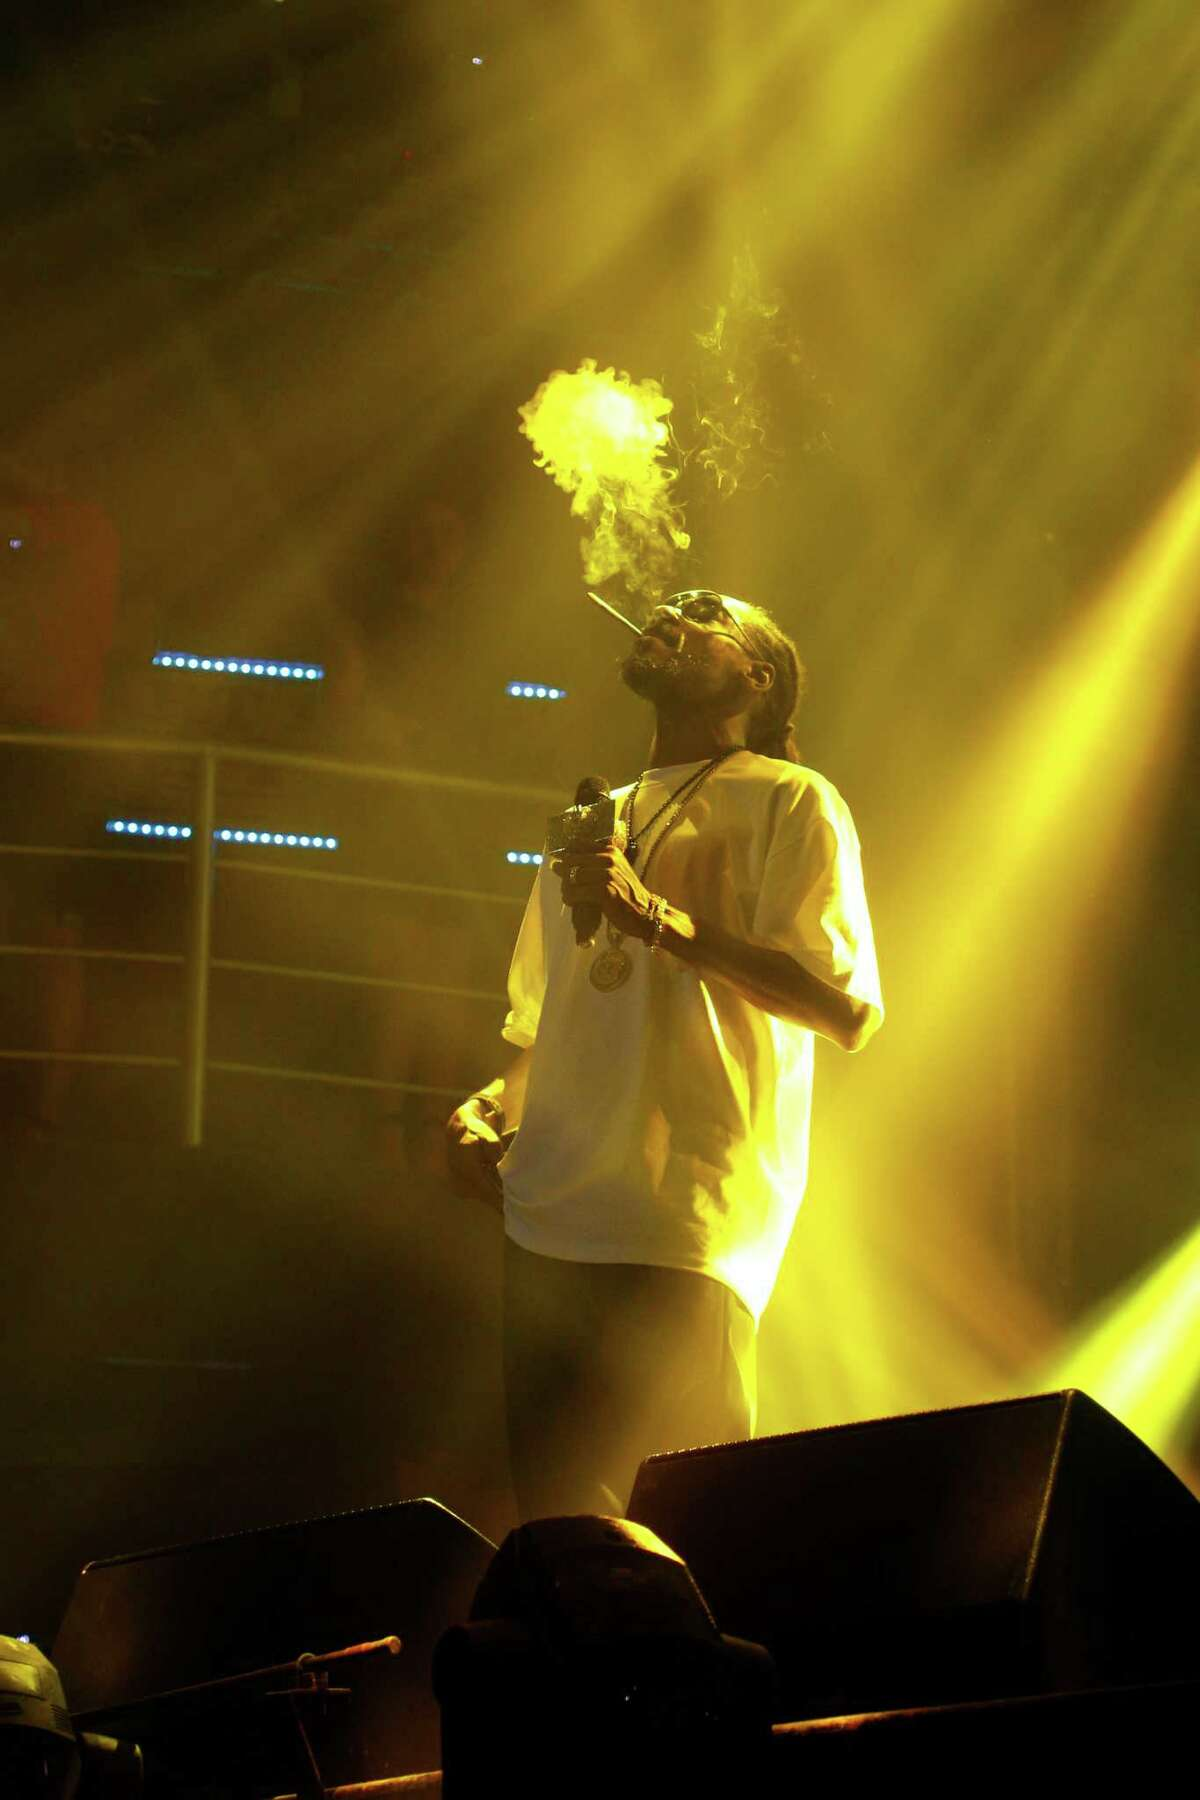 Rapper Snoop Dog performs at a discotheque in the resort city of Cancun, Mexico, Thursday March 13, 2014. Snoop Dog offered a concert as part of the activities in this city for this year's spring break season. Although violence in some border cities has quelled, spring breakers remain hesitant to take any chances in Mexico this year. While more Americans are returning to popular destinations such as Mexico City, Cancun and Los Cabos, the border communities have yet to see significant rebounds.